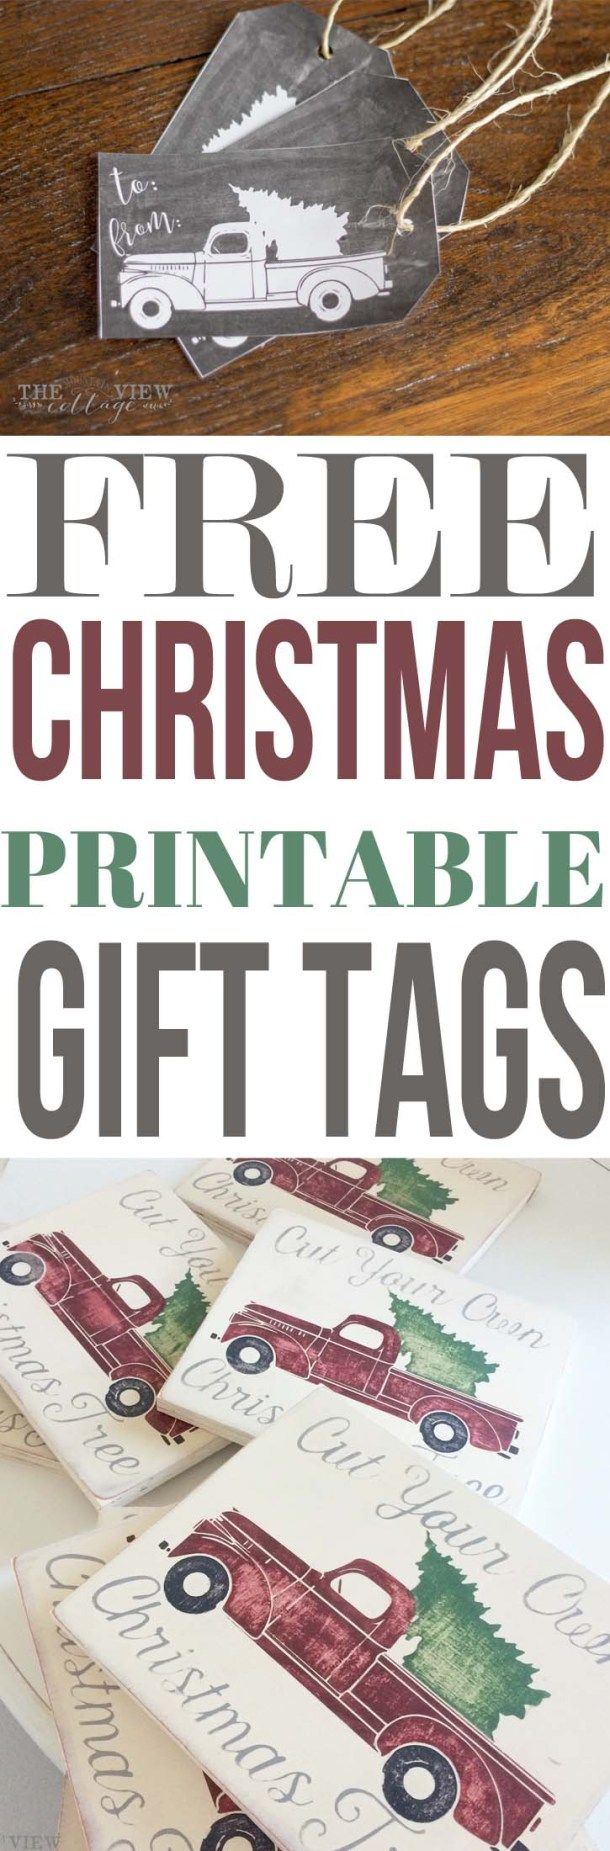 Vintage Truck Getting the Annual Christmas Tree Free Printable Holiday Gift Tags | The Mountain View Cottage - The BEST Christmas and Holiday FREE Printables - Gift Tags - Gift Card Holders - Christmas Greeting Cards and more FREE Downloadable Printables for the Holiday Seasons